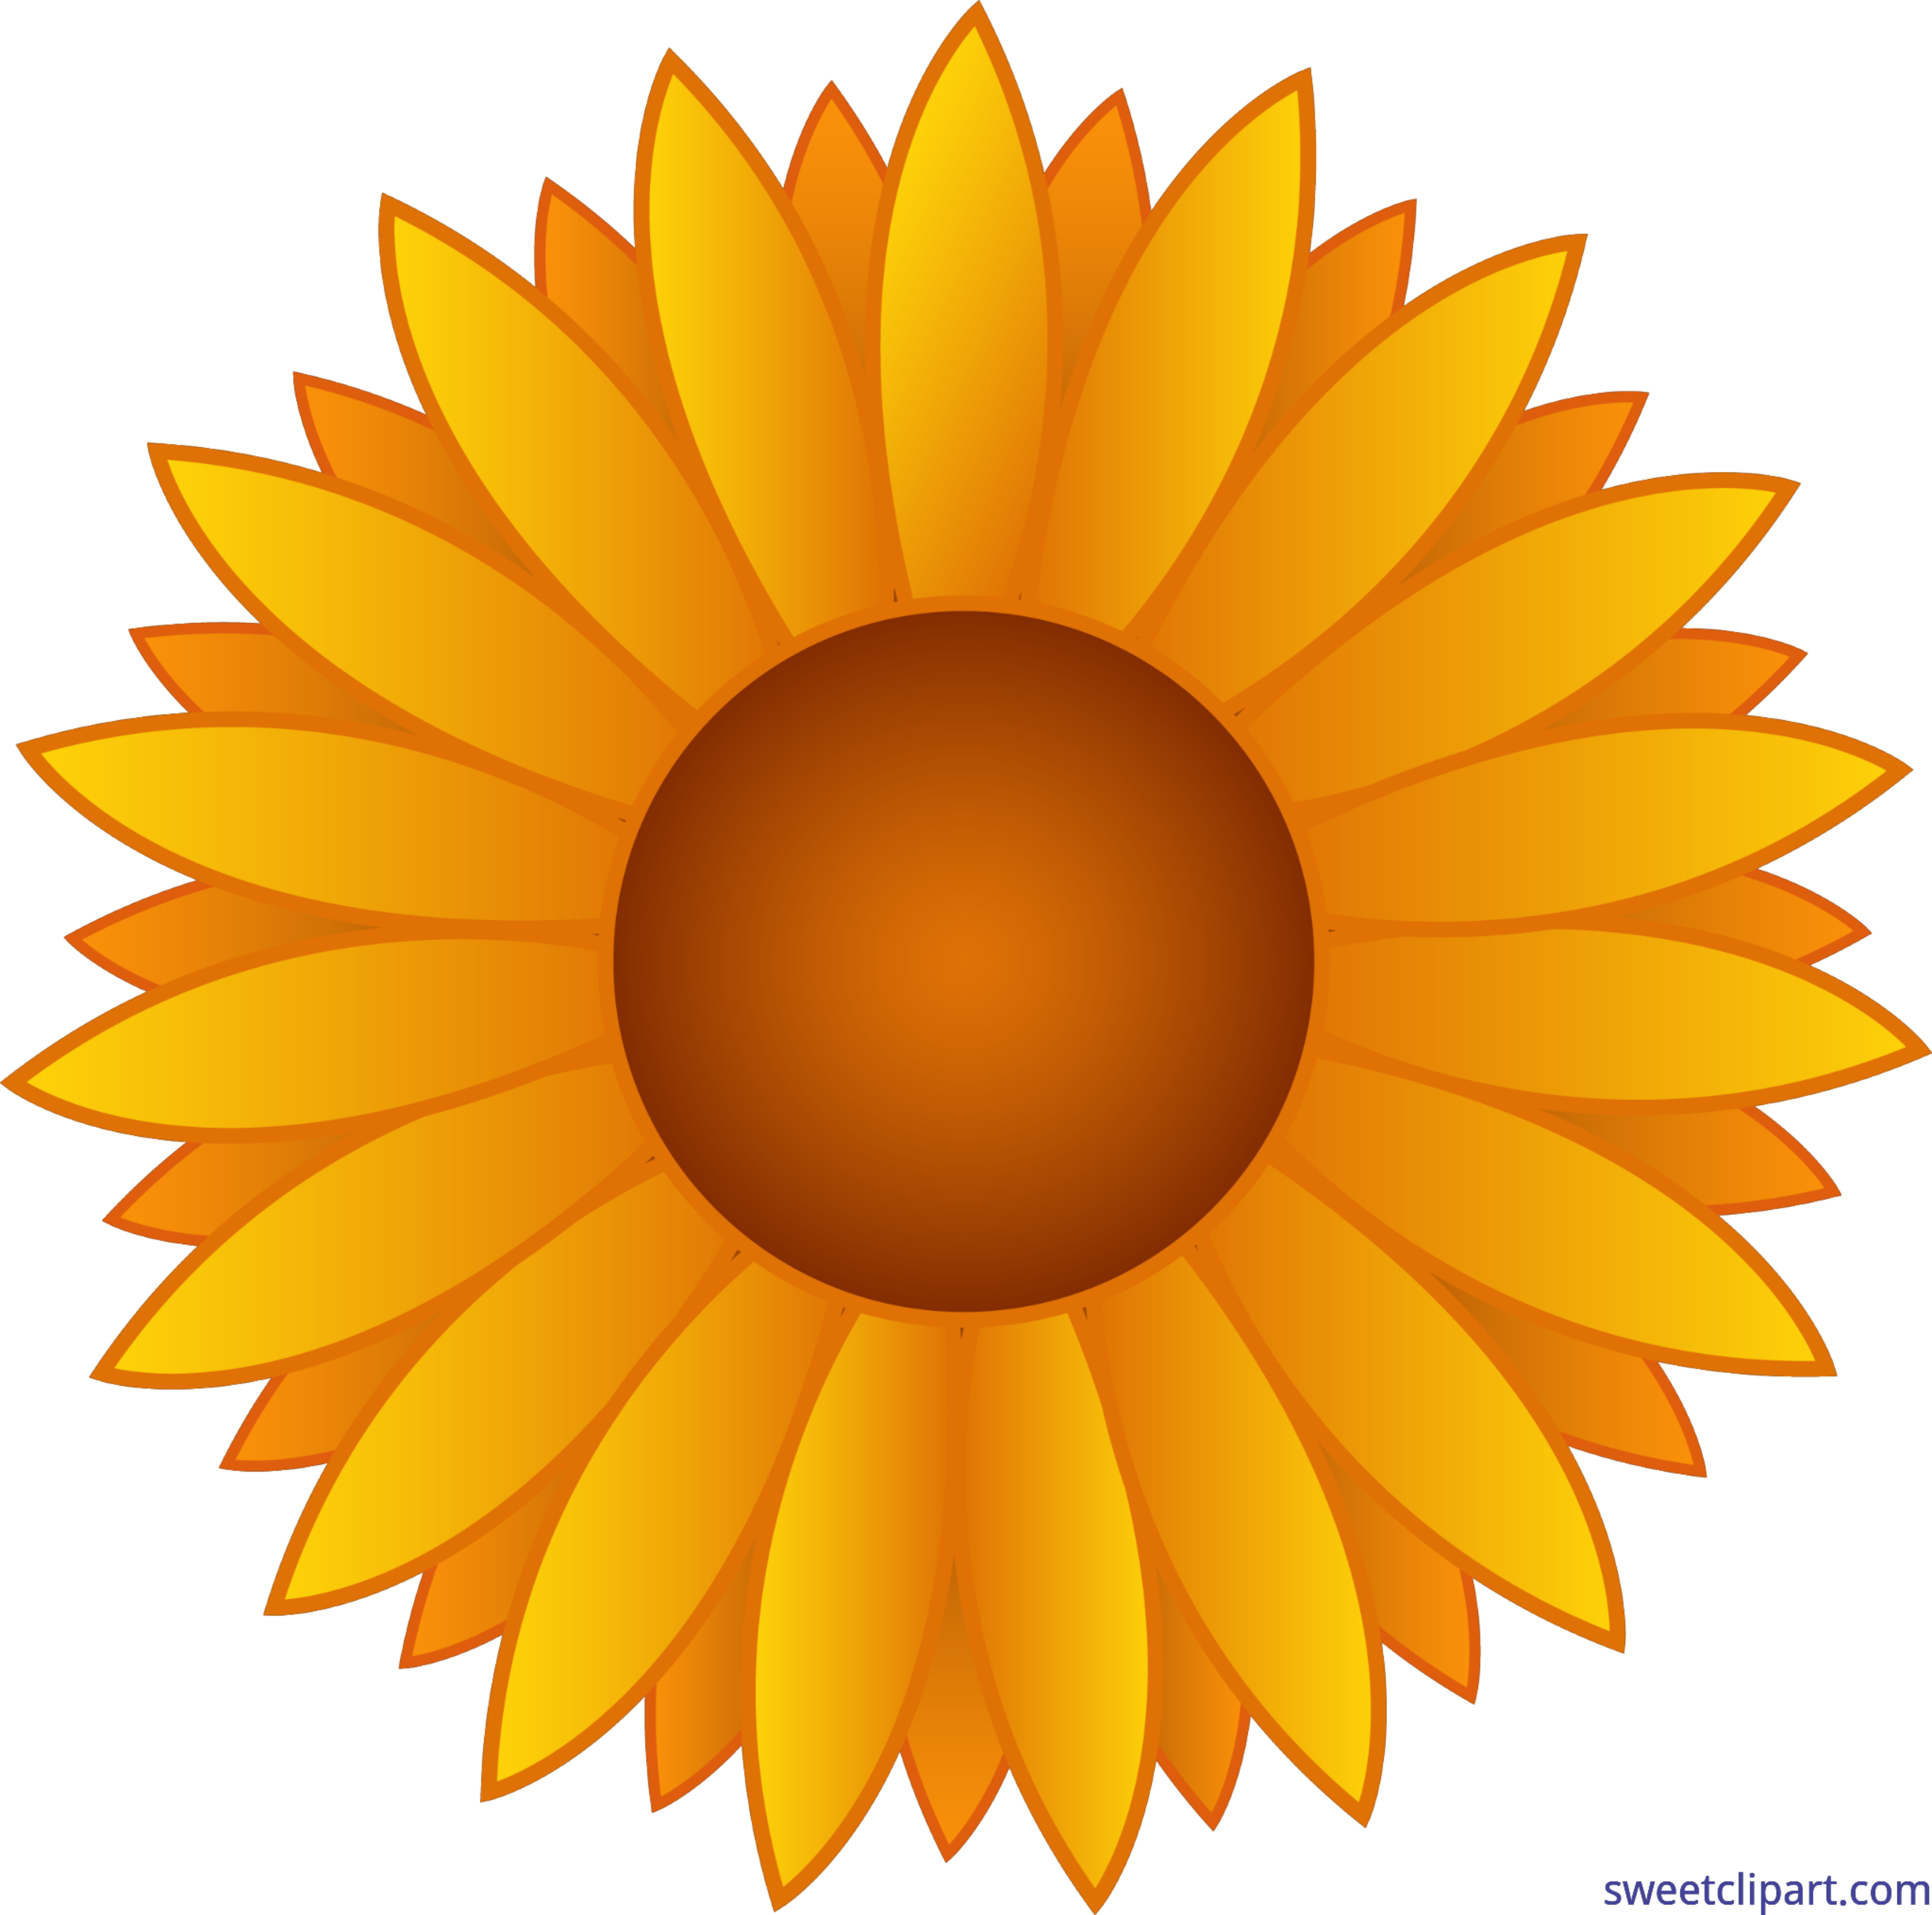 royalty free stock Flowers yellow sunflower clip. Sunflowers clipart rose